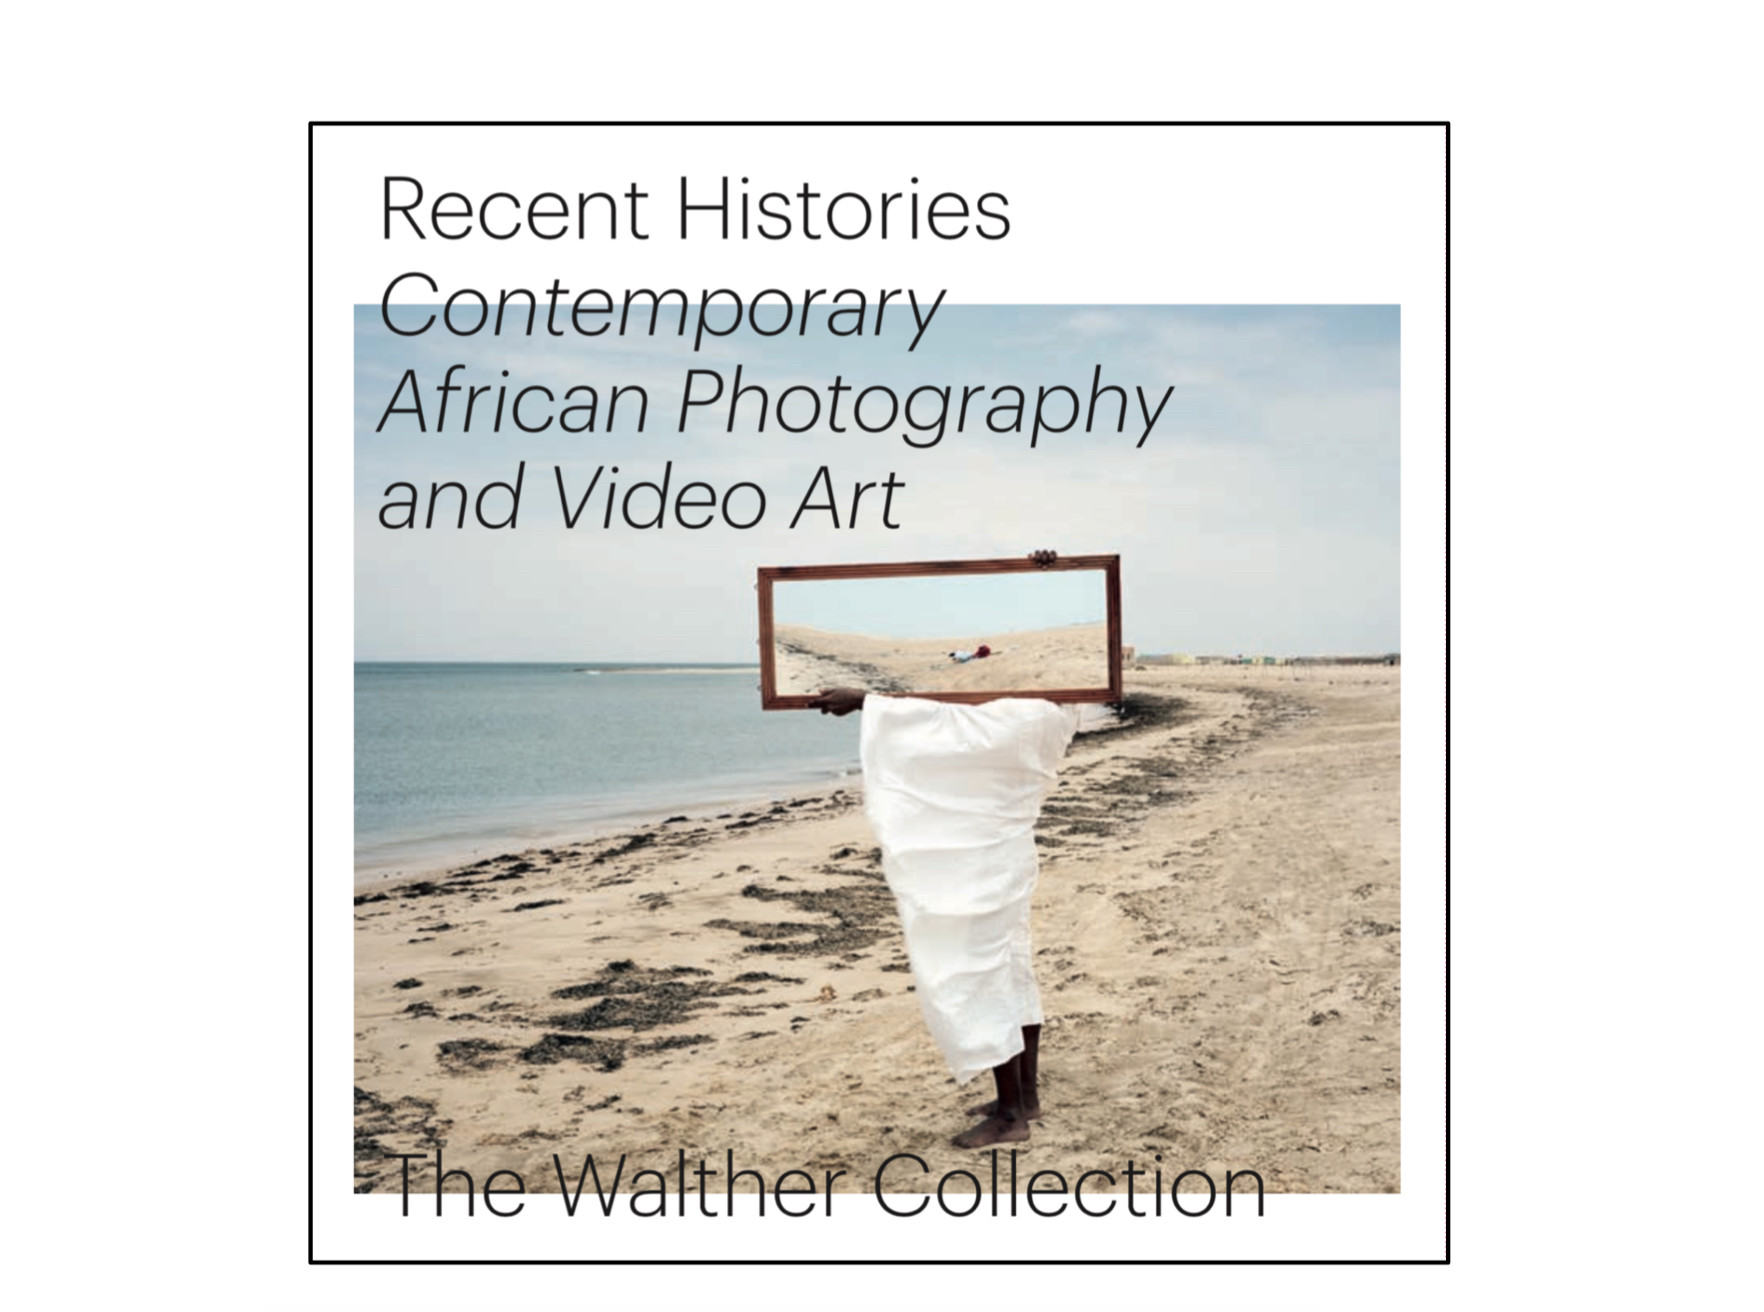 Recent Histories Contemporary African Photography and Video Art. Walther Foundation. Available on Artskop.com.